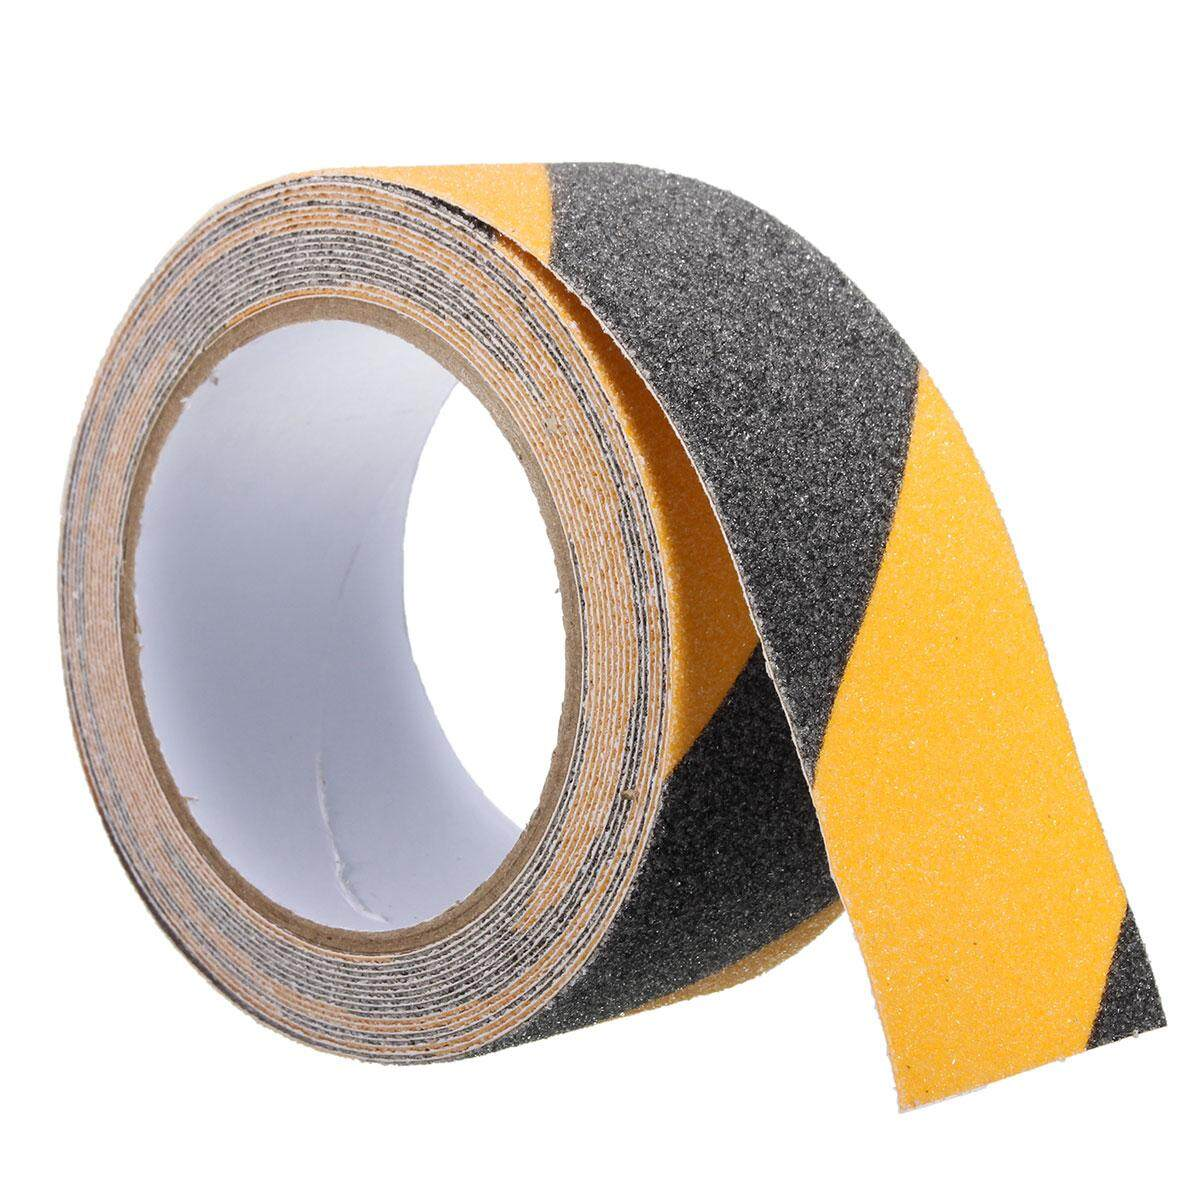 5cm x 5m Floor Safety Non Skid Tape Roll Anti Slip Adhesive Stickers High Grip Black and yellow